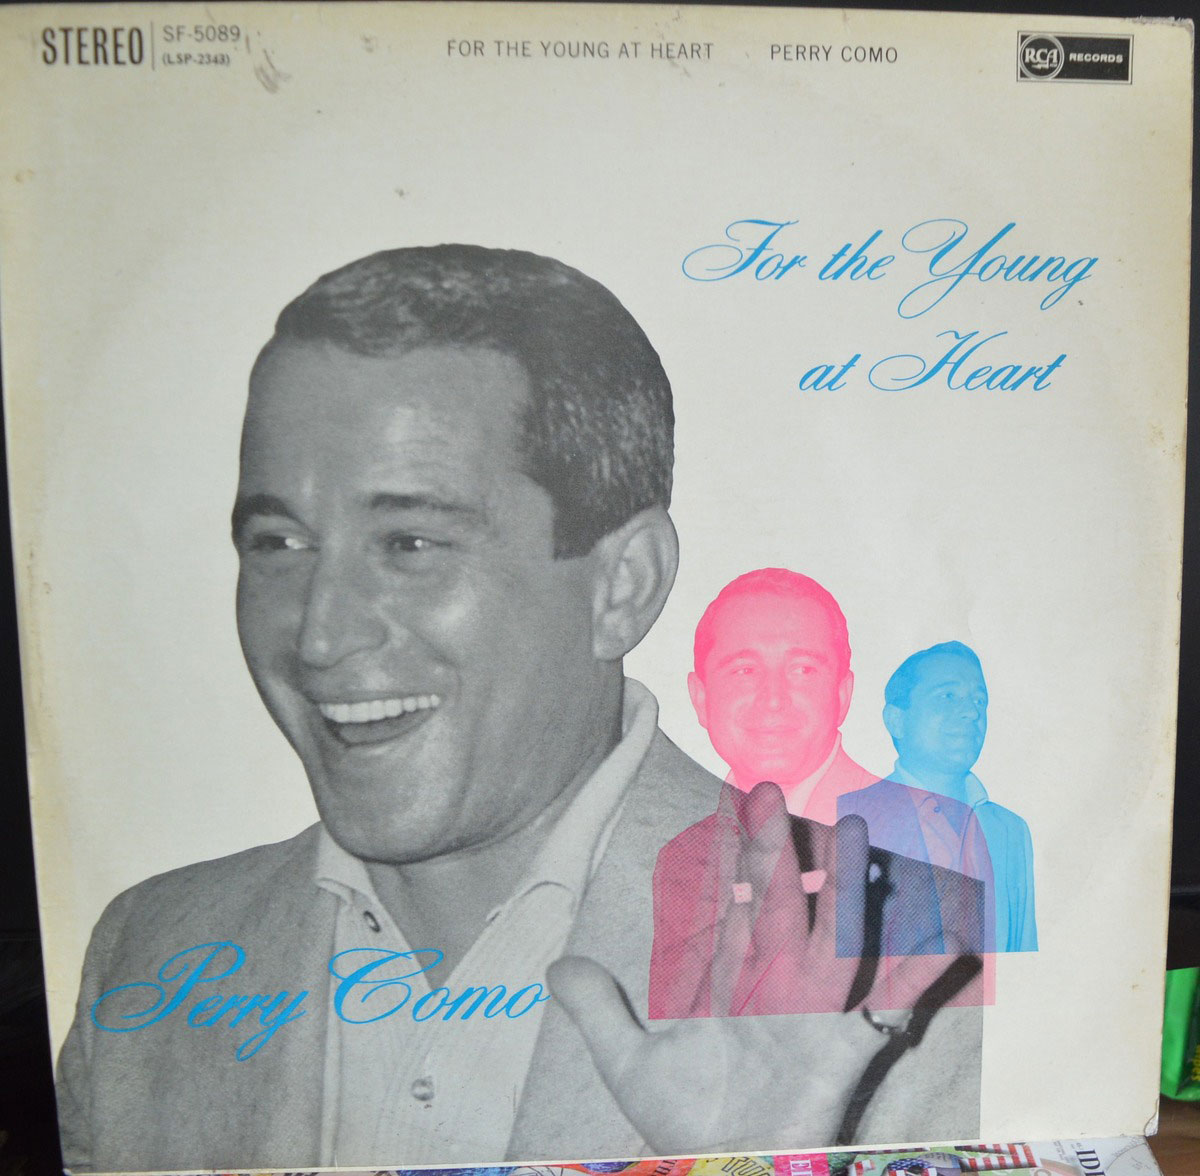 List of songs recorded by Perry Como